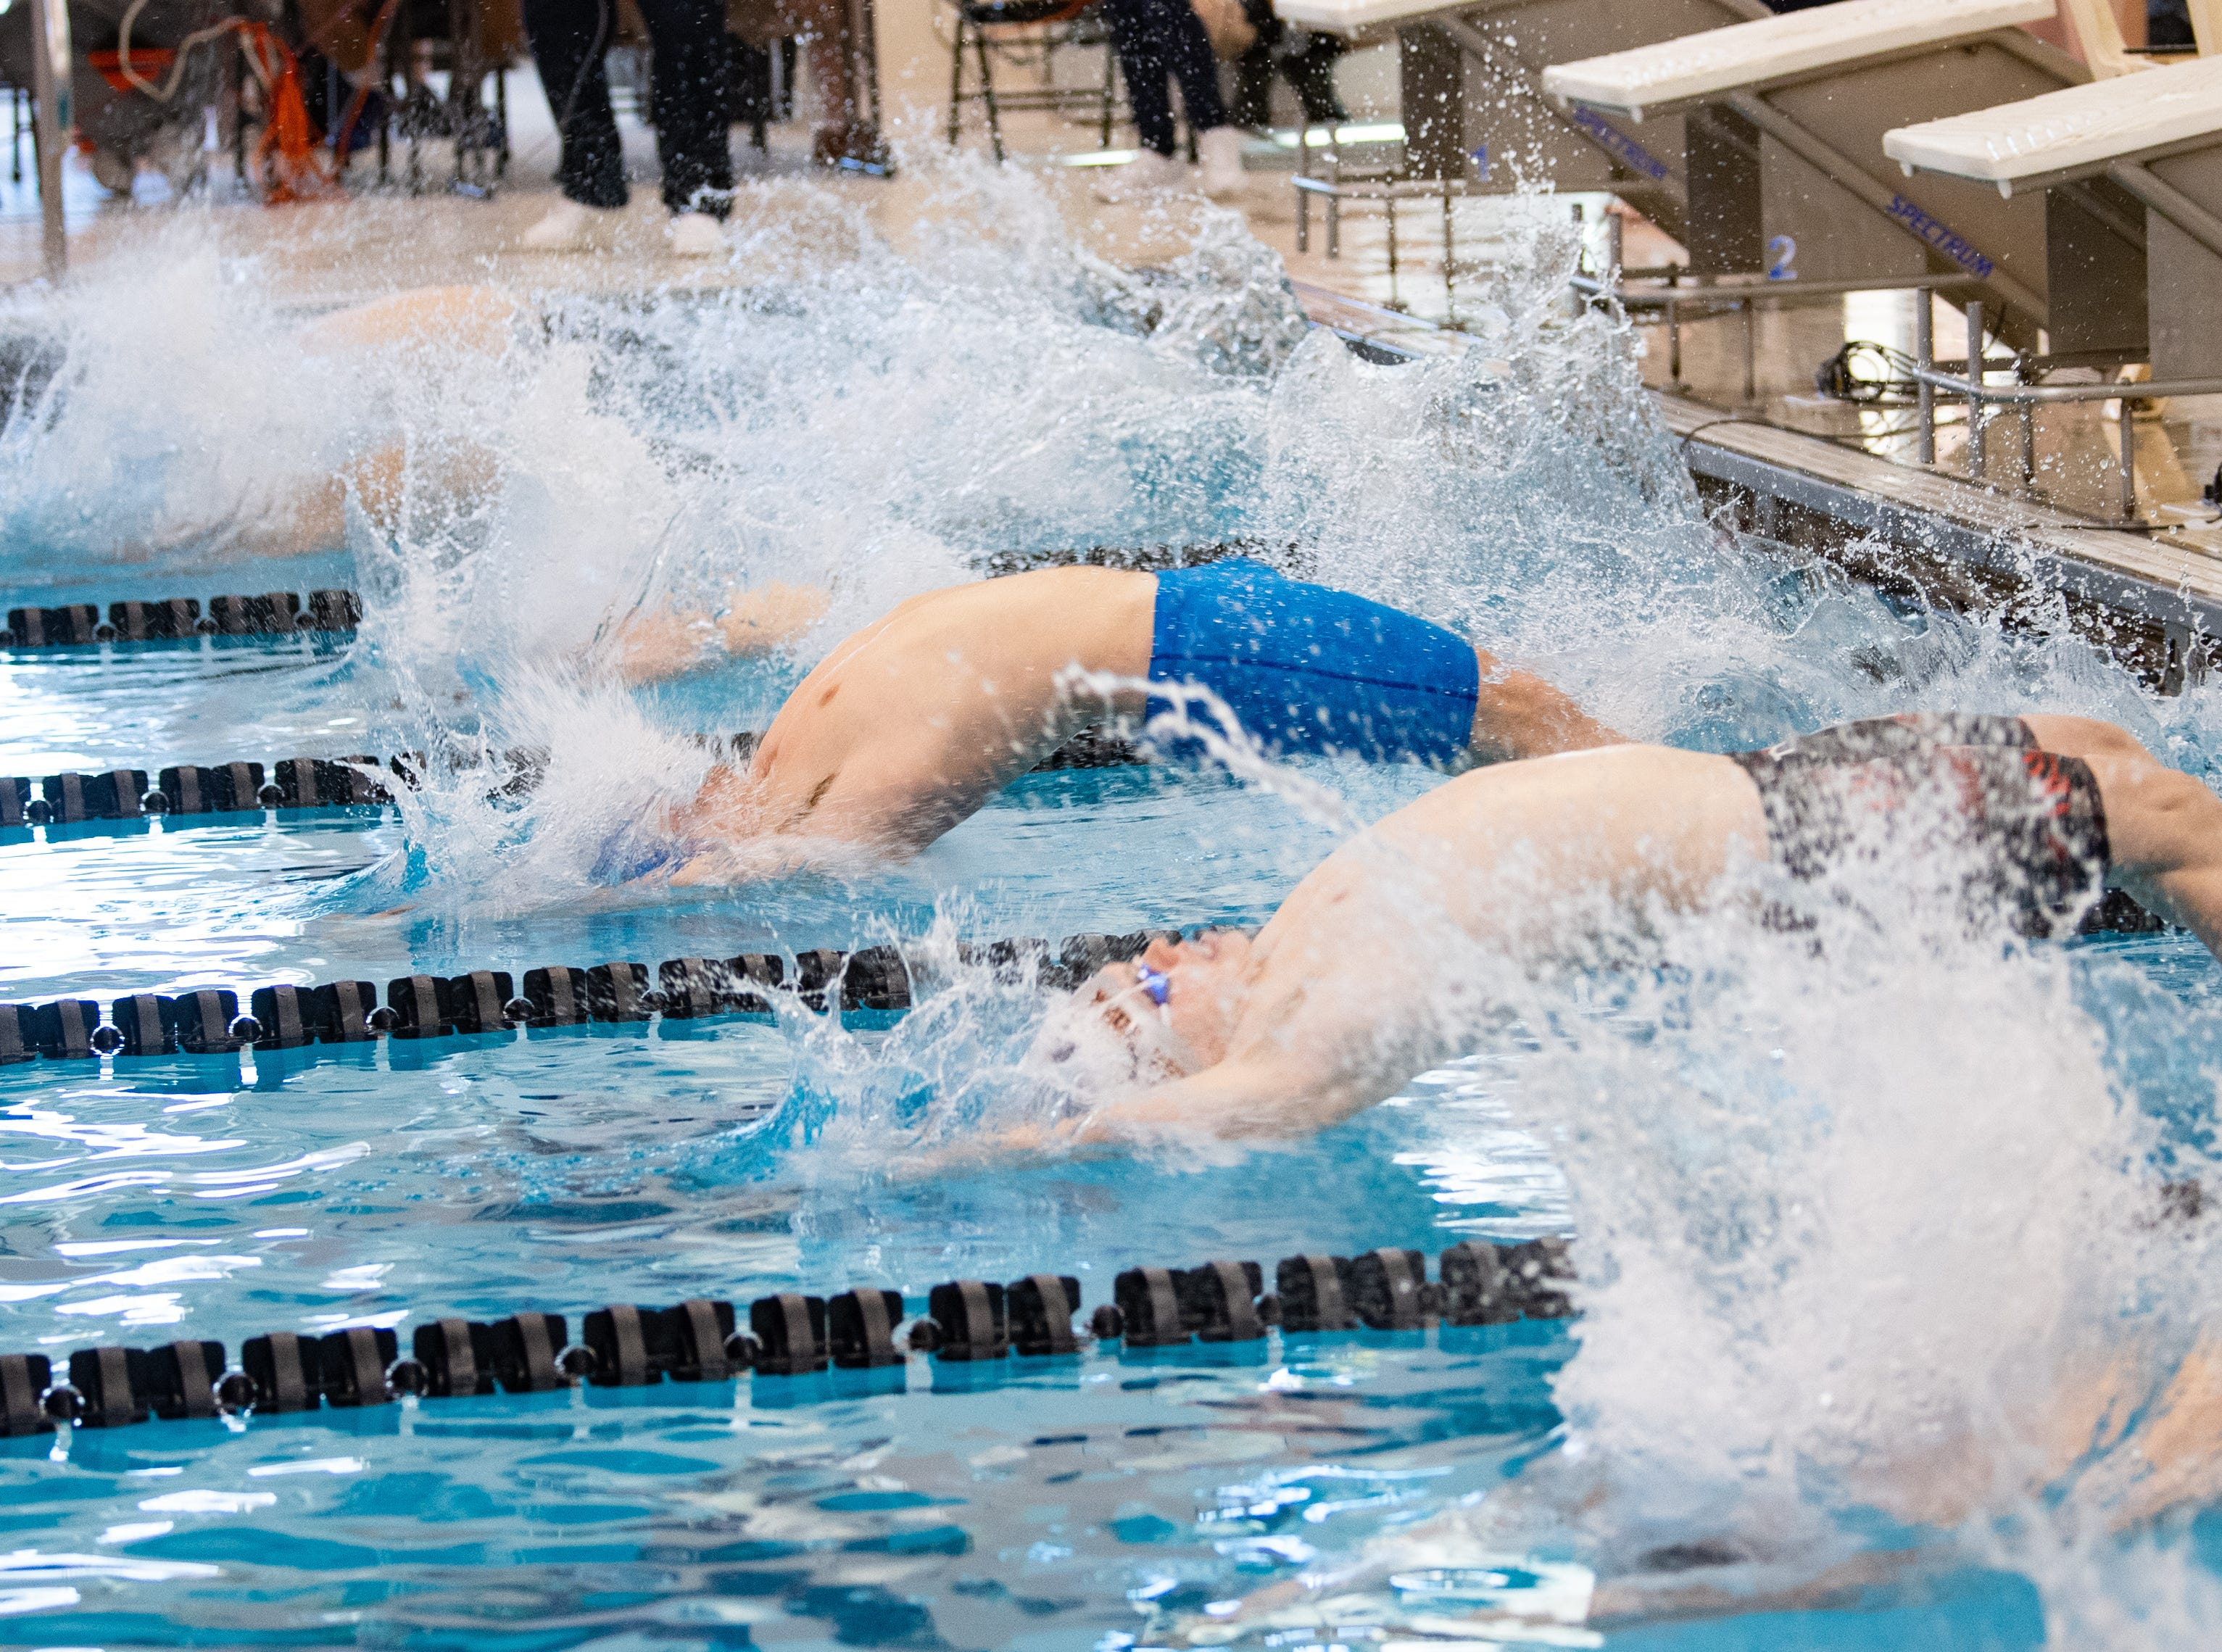 Swimmers start the Boys 100 Yard Backstroke during the 2019 YAIAA Swimming and Diving Championships at Central York High School, February 9, 2019.